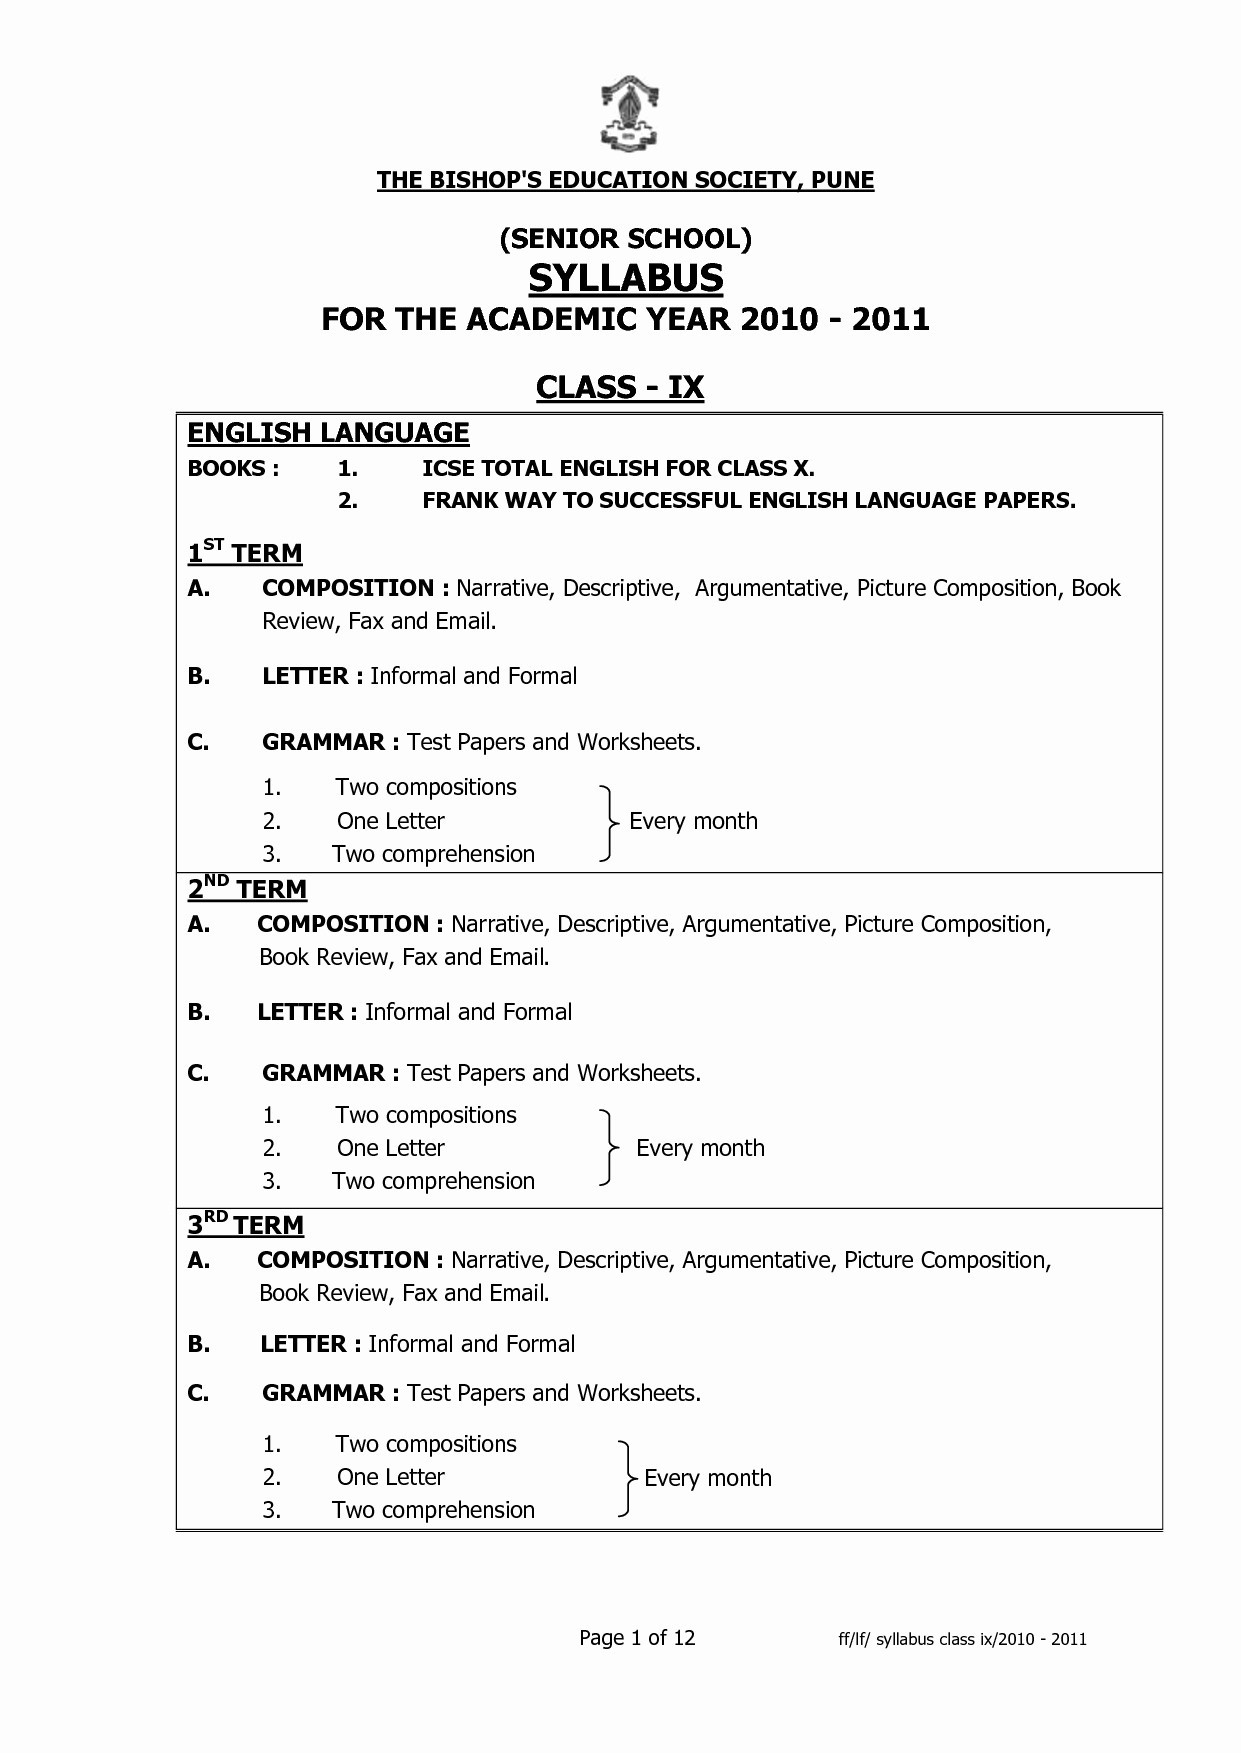 1st Grade Grammar Worksheets To Download